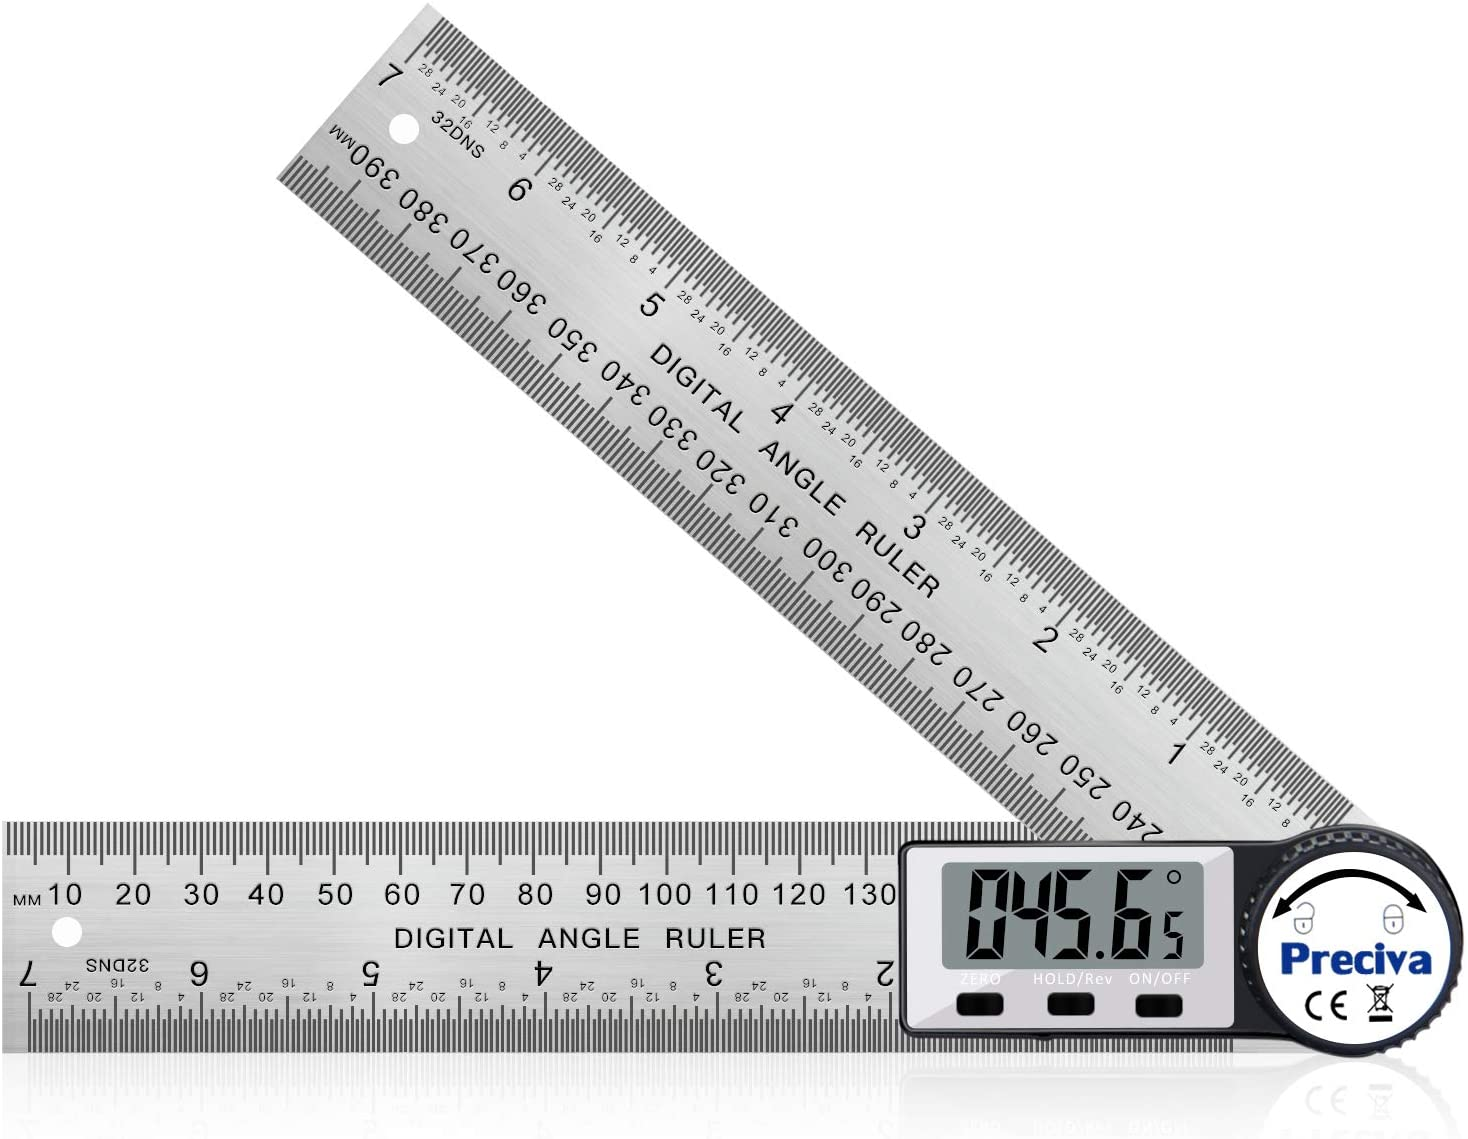 Digital Angle Finder Ruler, Preciva 7.5inch/200mm Digital Protractor Stainless Steel Angle Ruler with Large LCD Display and Zeroing/Locking/Reverse Functions (CR2032 Battery Included)